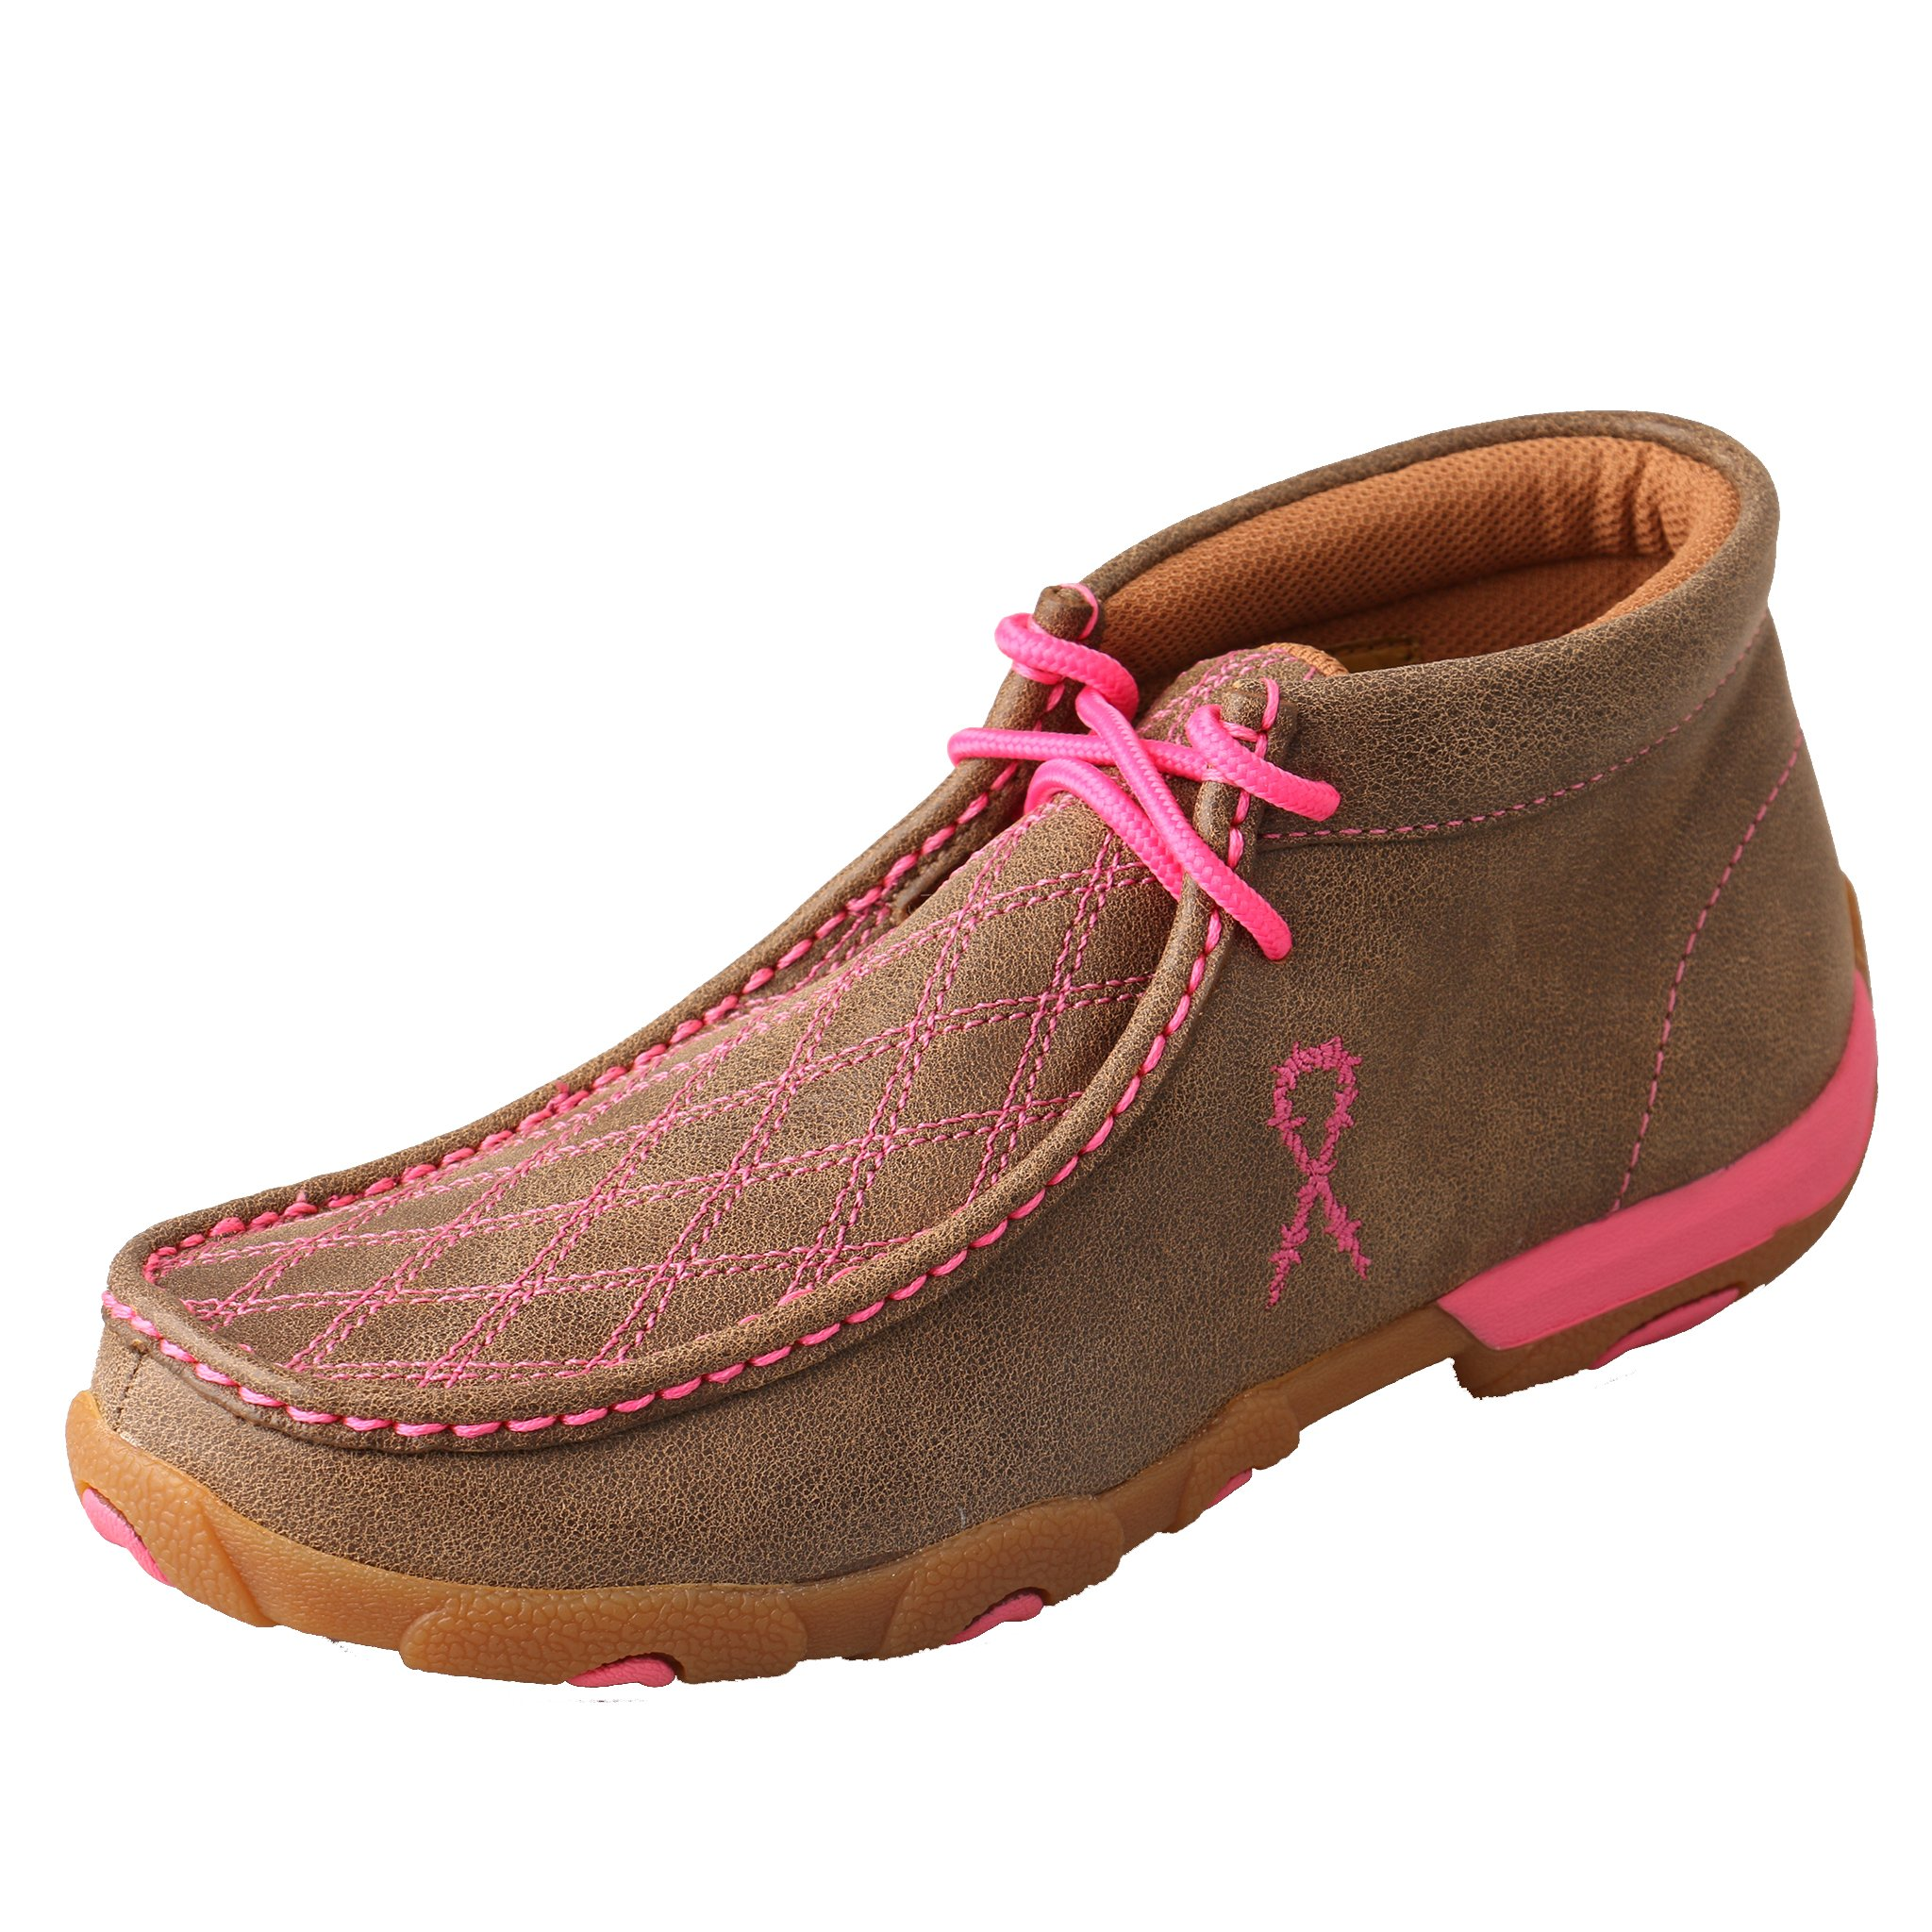 Twisted X Women's Driving Moccasins Bomber/Neon Pink - Stiched Vamp Design Outdoor Footwear 7.5M US